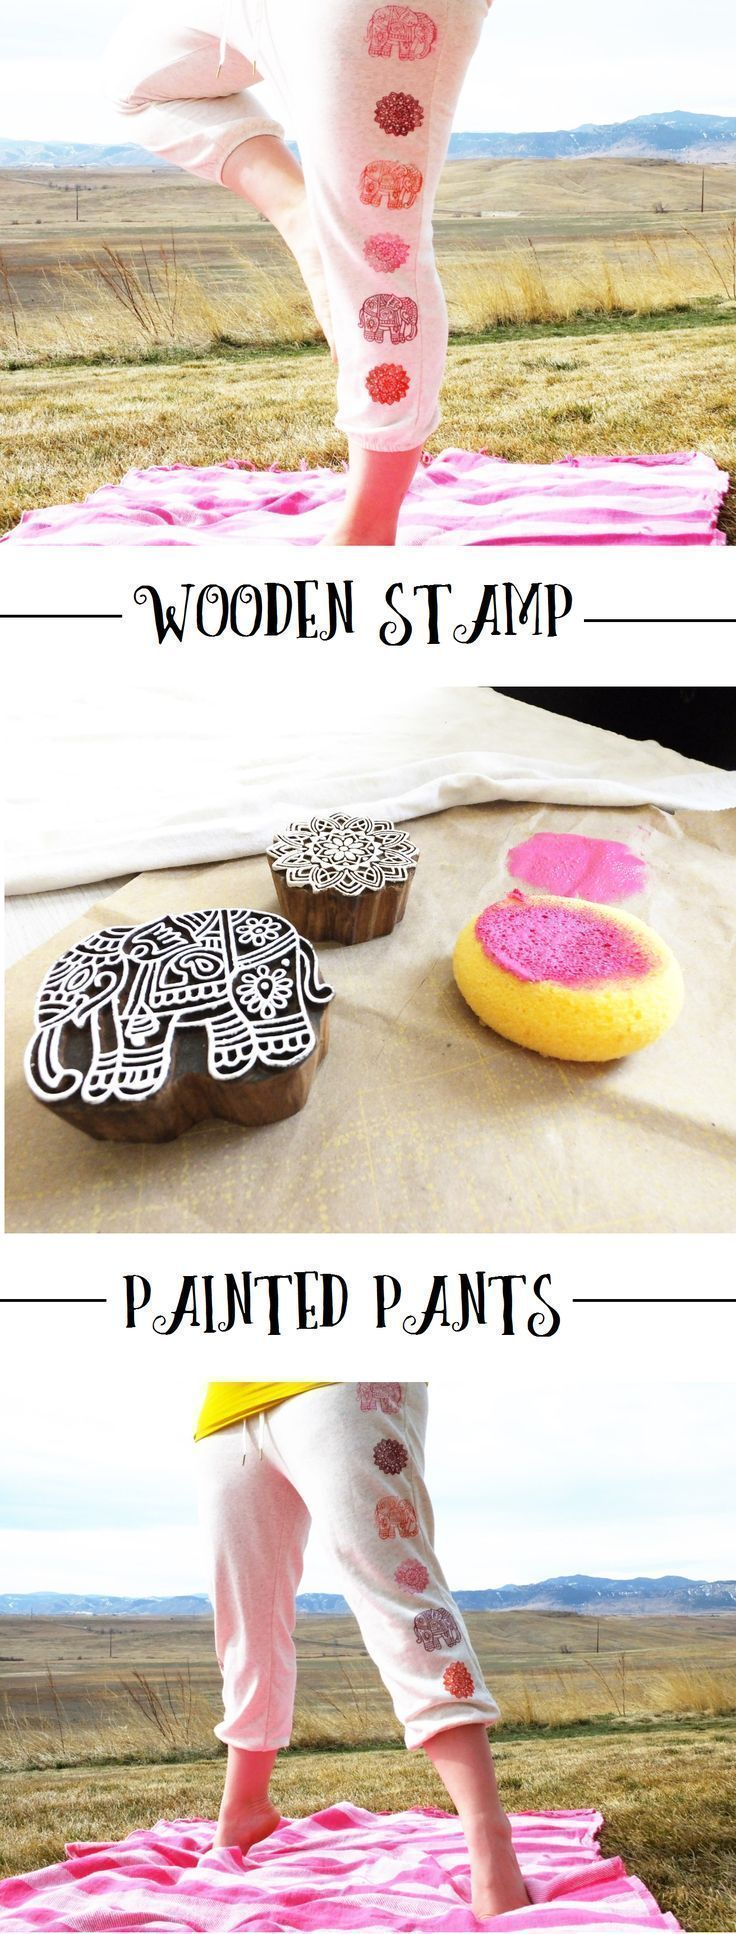 DIY: Wooden Stamp Painted Pants || http://theviewfromhere.is